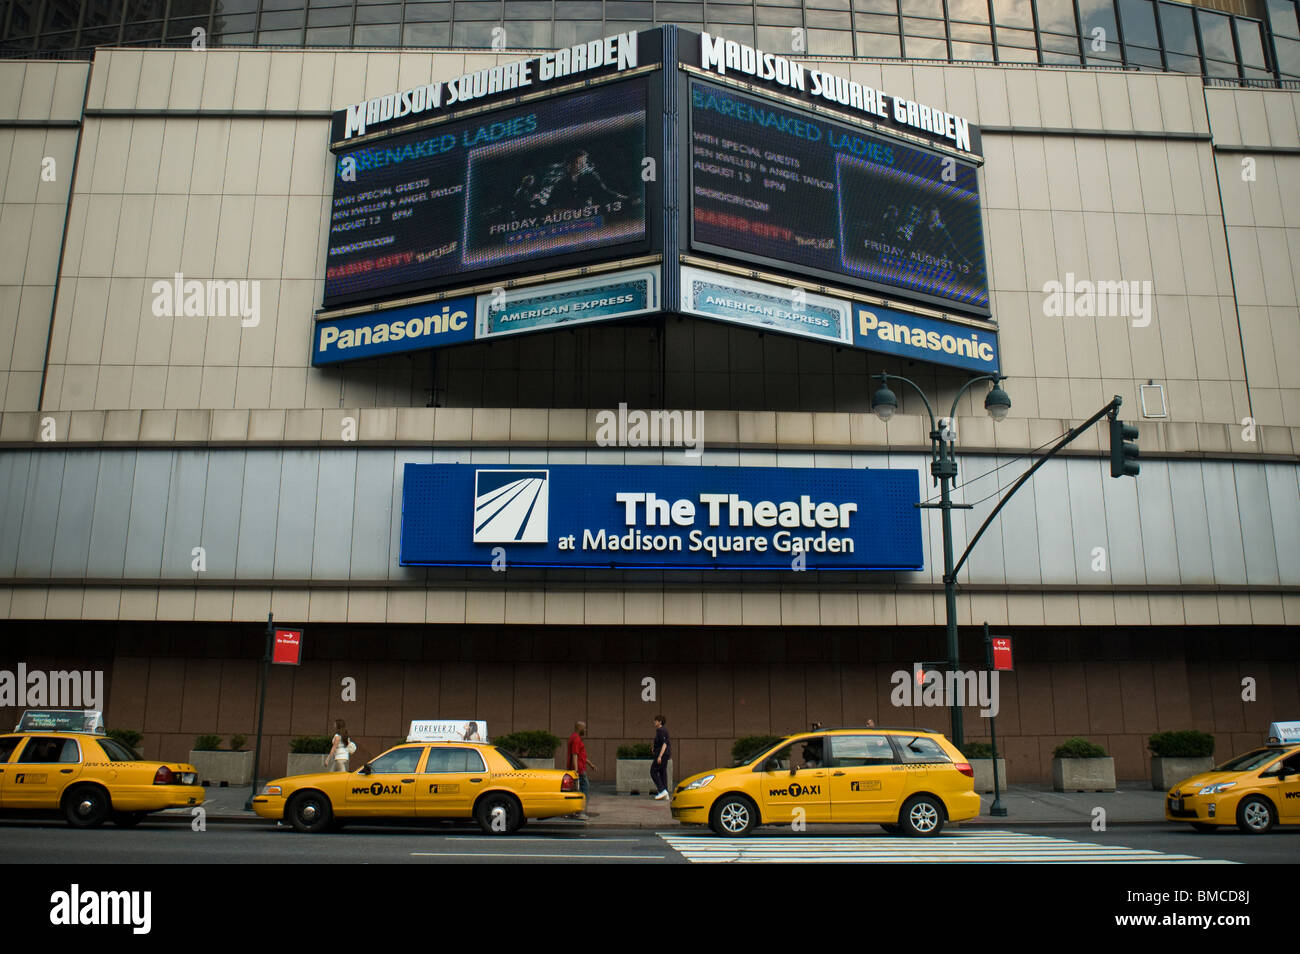 The Theater In Madison Square Garden Formerly The Wamu Theater In Stock Photo Royalty Free